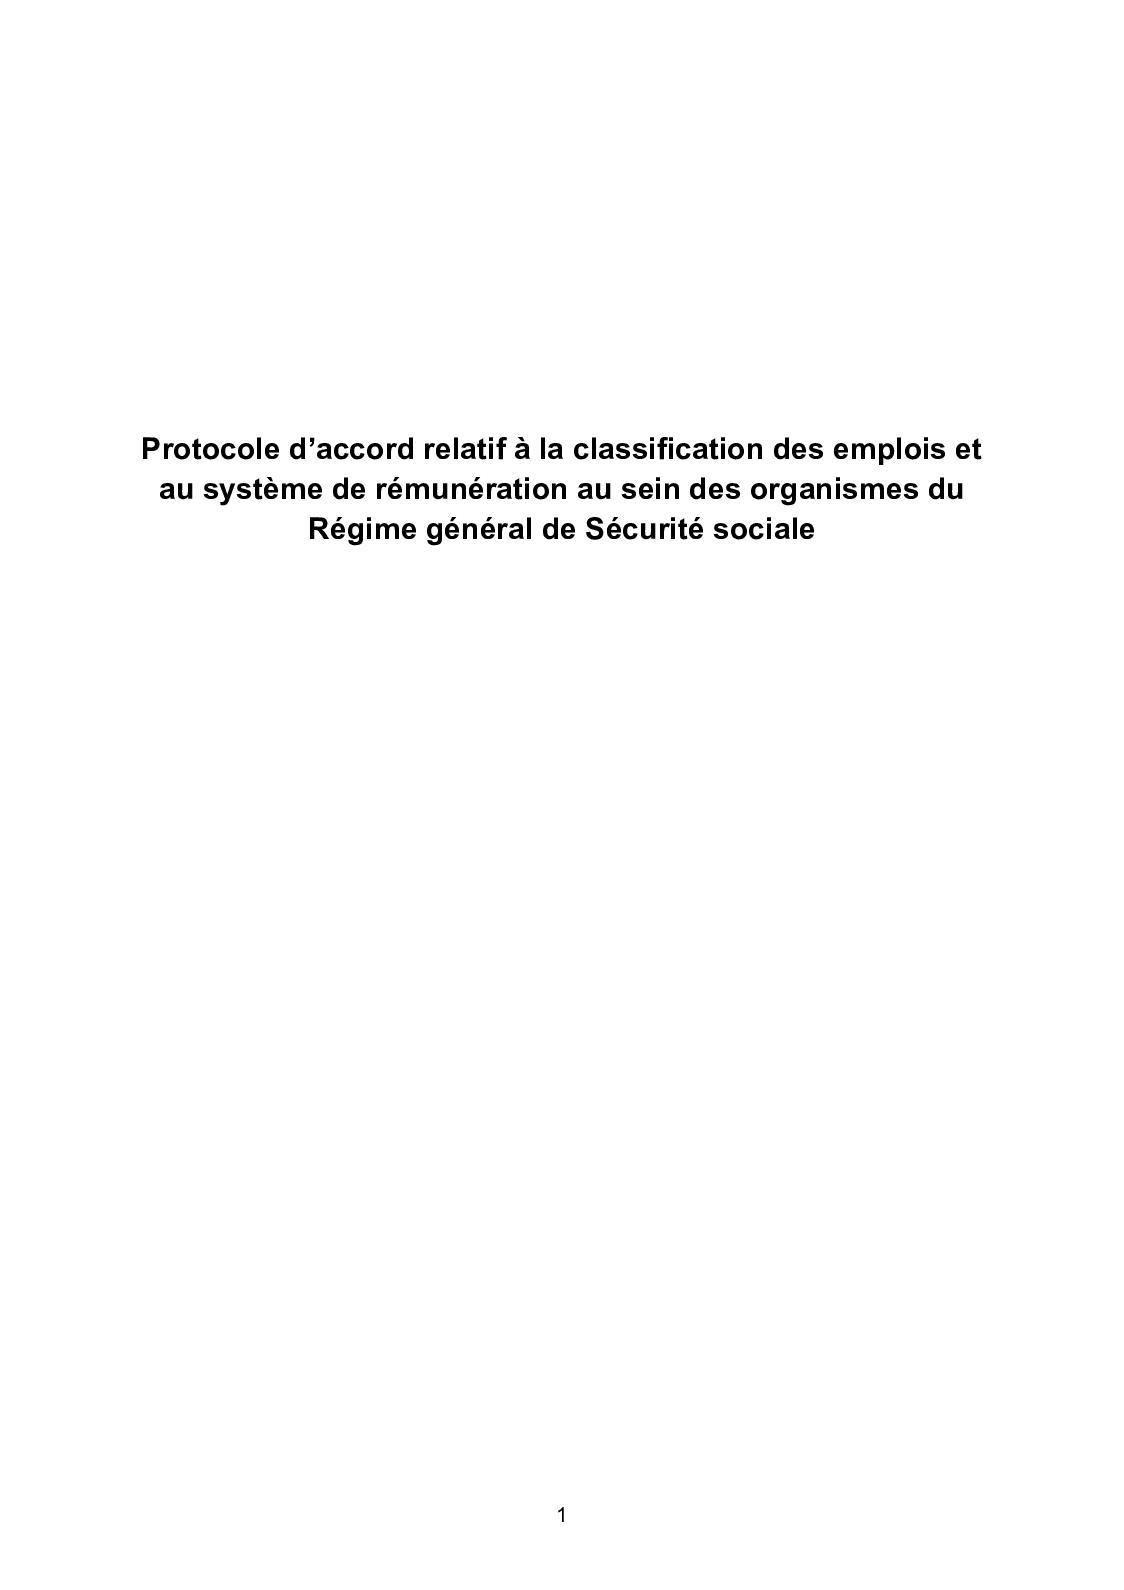 Secu - Classification EC Texte 2020 Ouvert à Signature